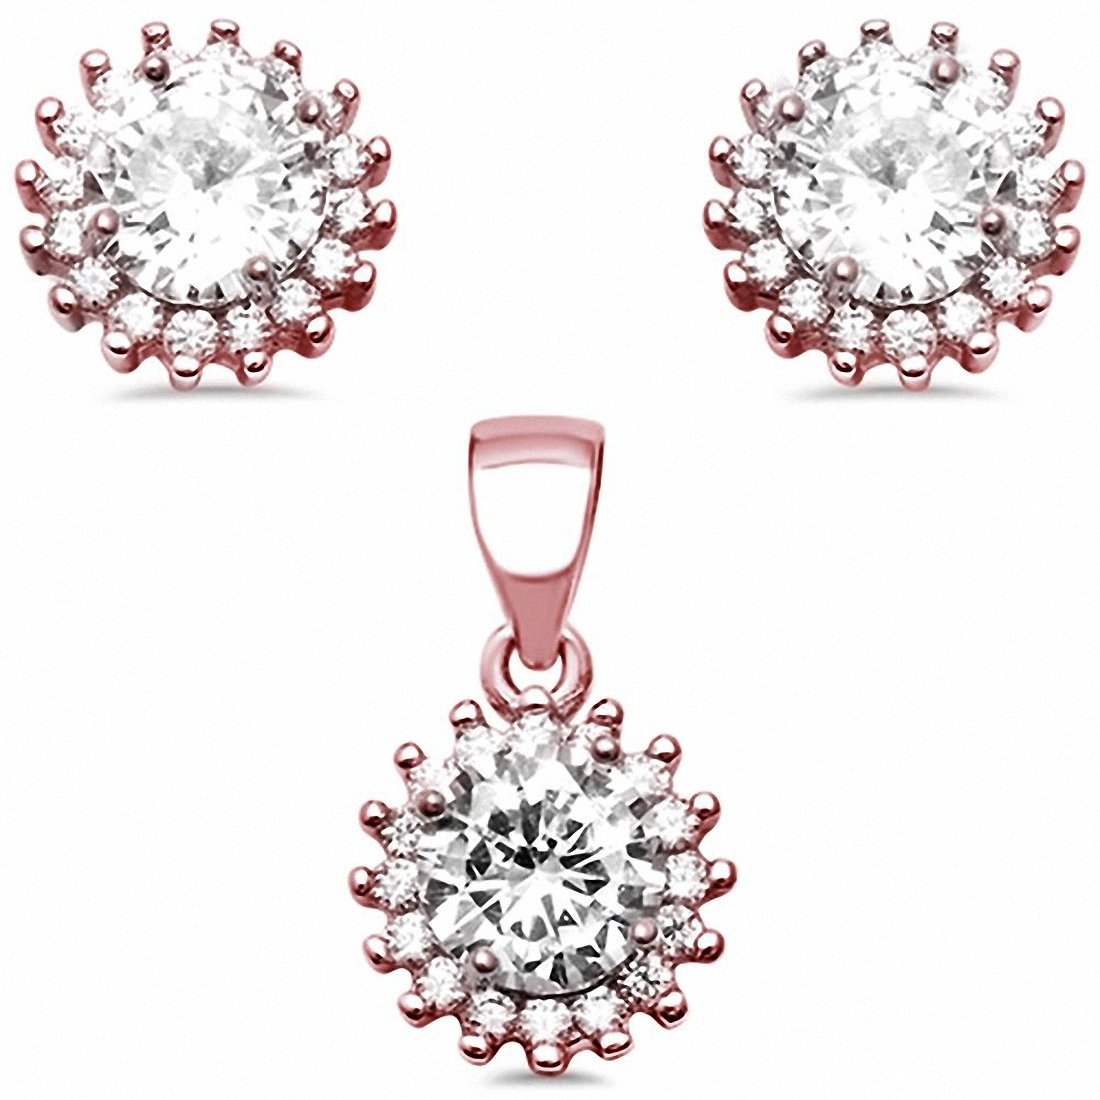 Halo Jewelry Set Round Cubic Zirconia 925 Sterling Silver Choose Color